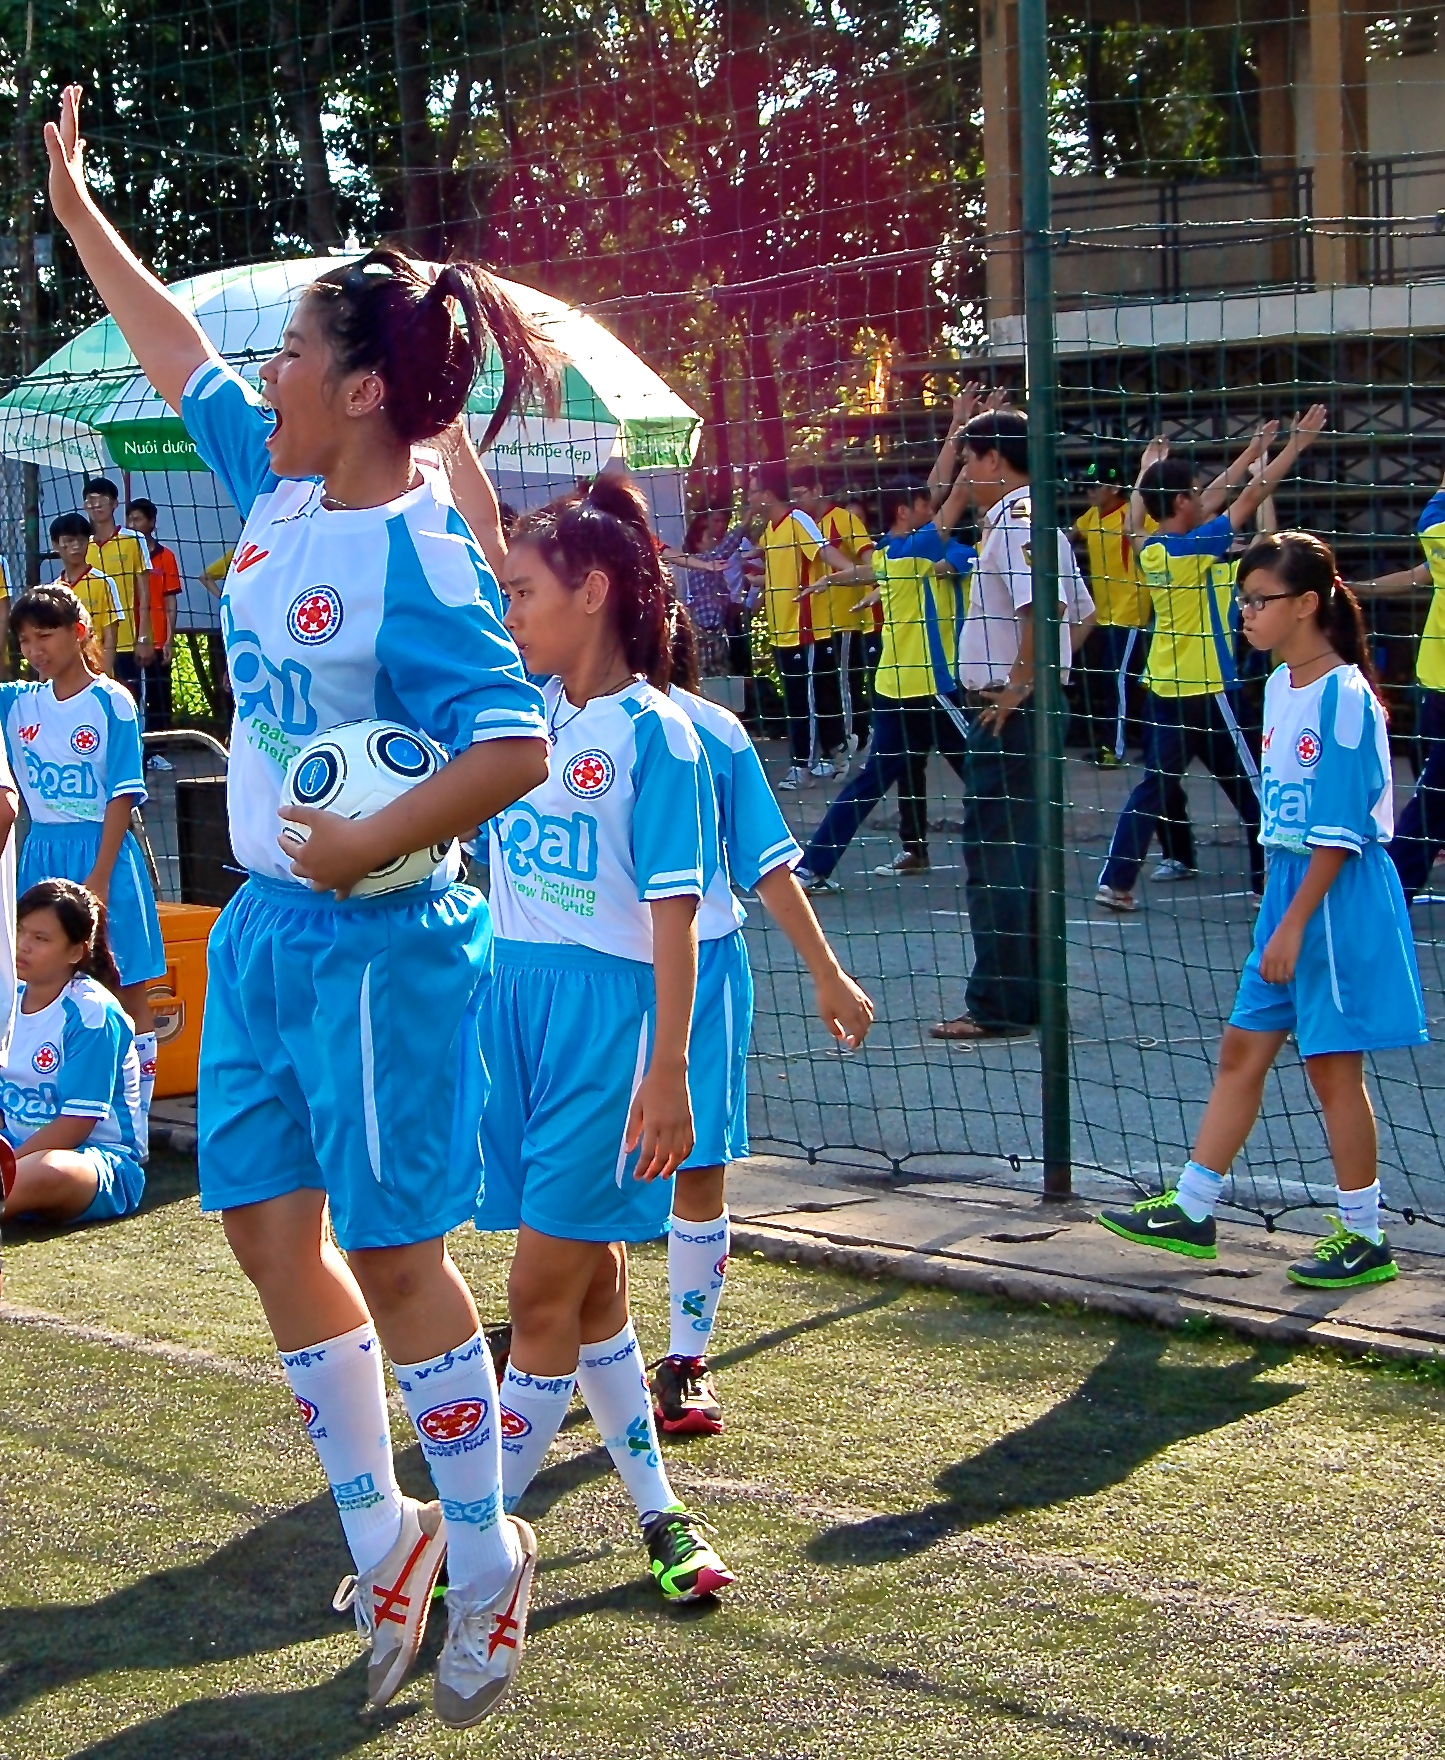 Football For All Vietnam Launches Goal |